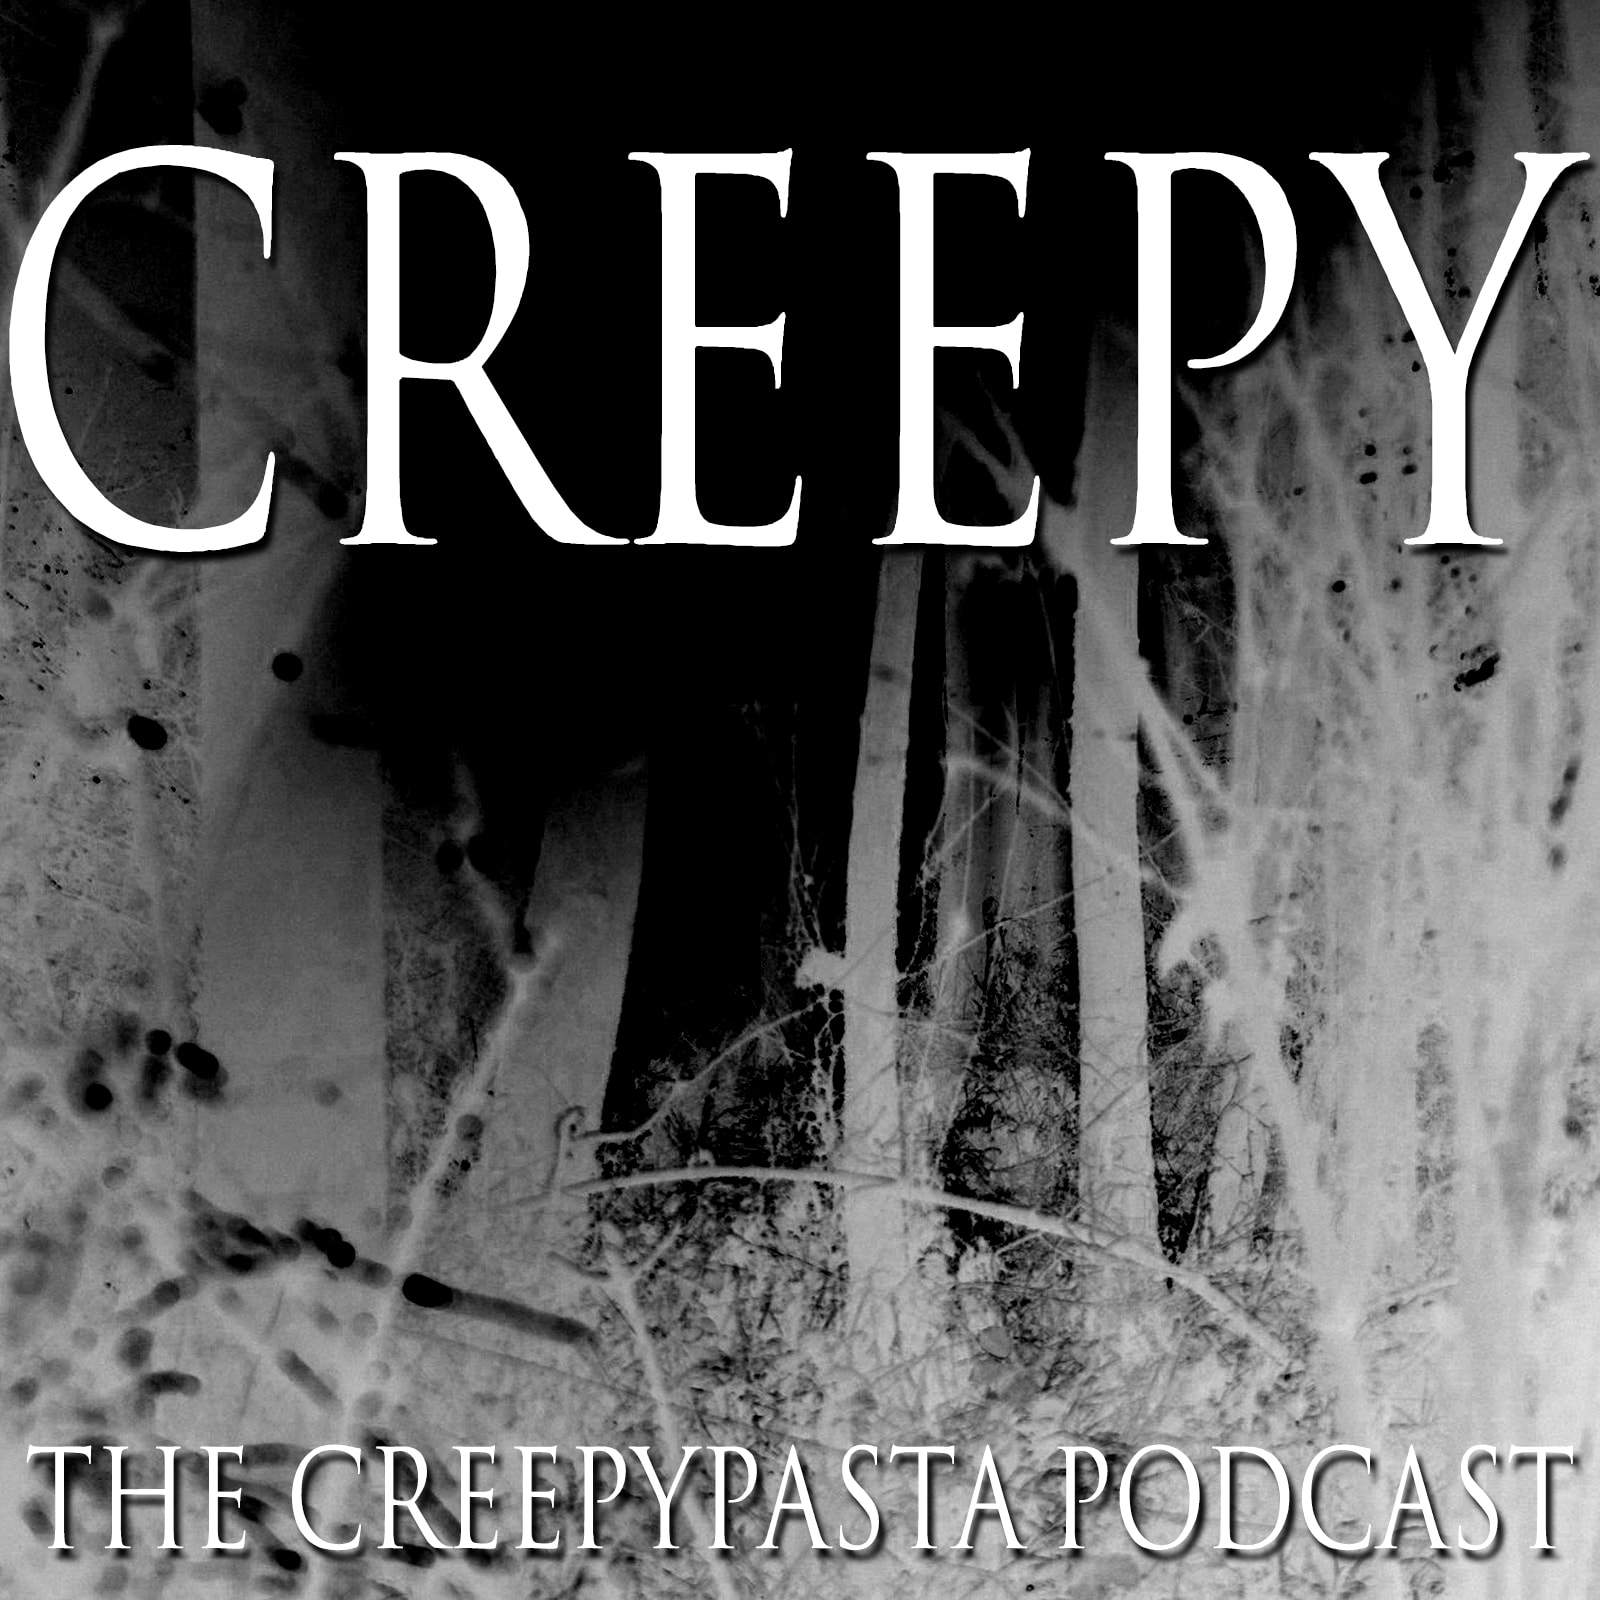 podcast of the week creepy